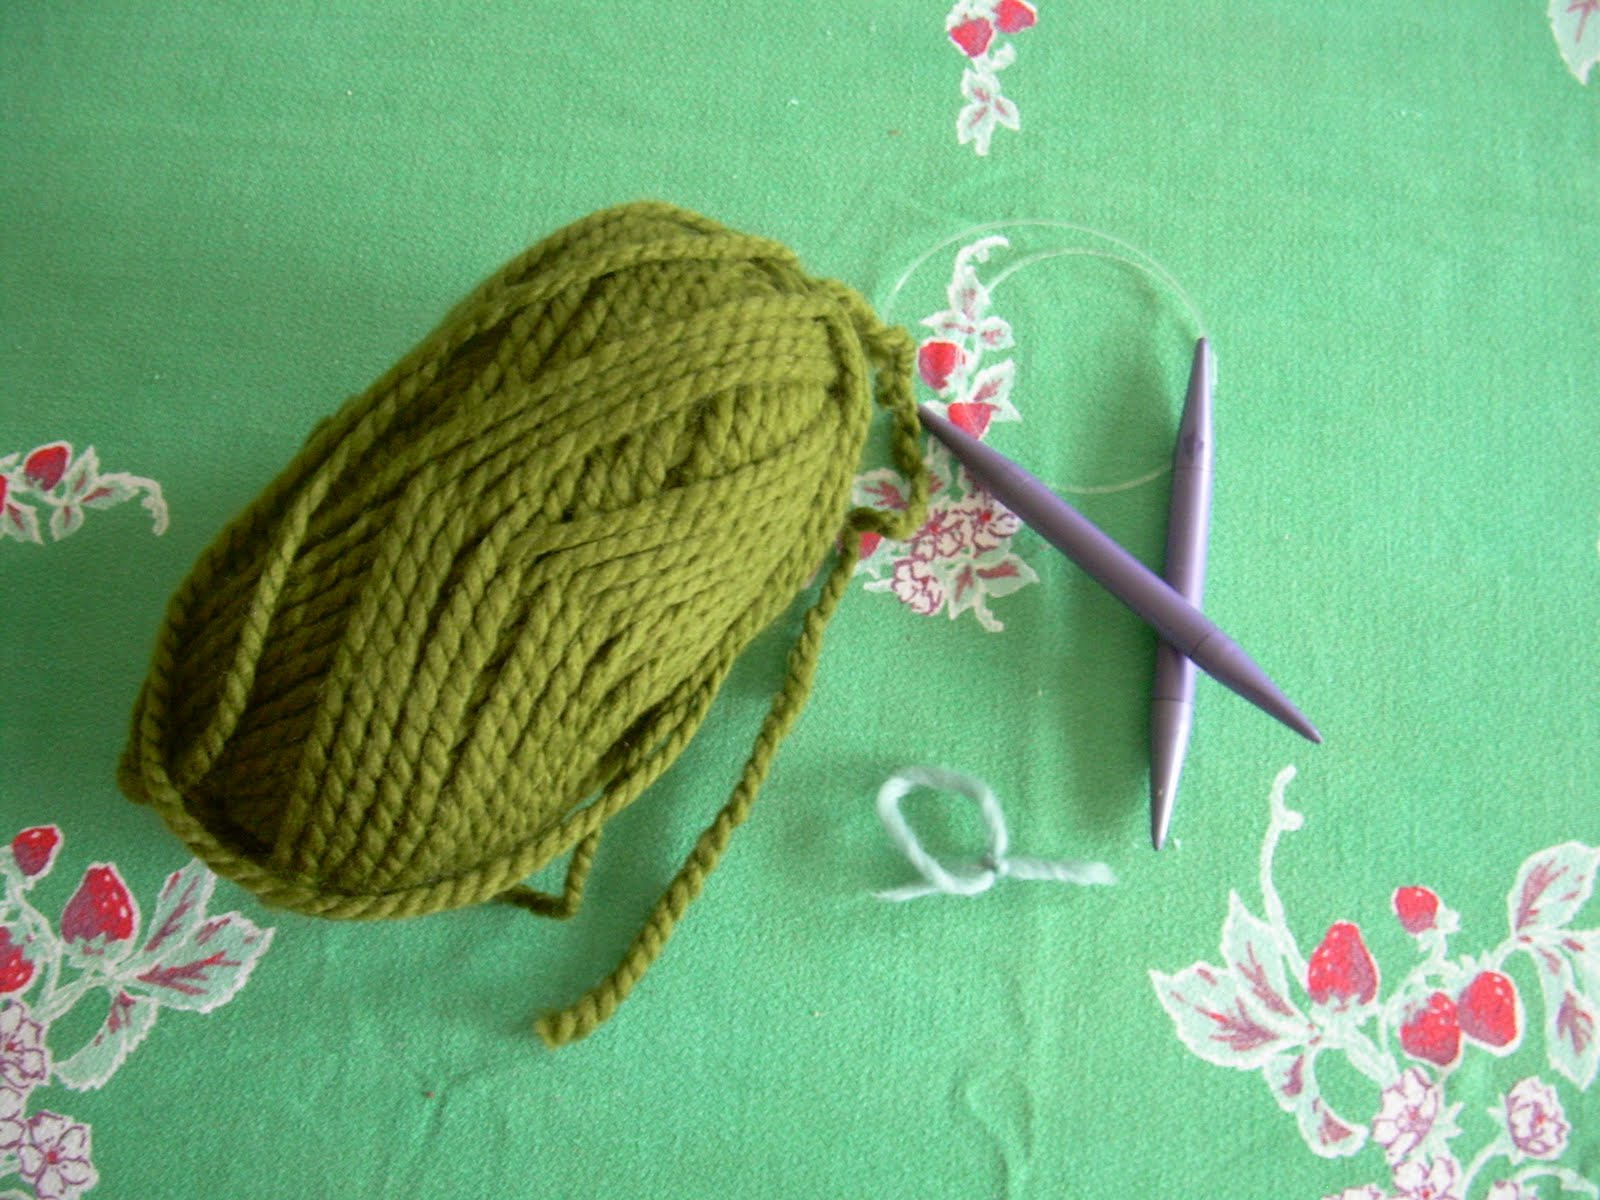 Smallest Friend: Knitting a Circle Scarf